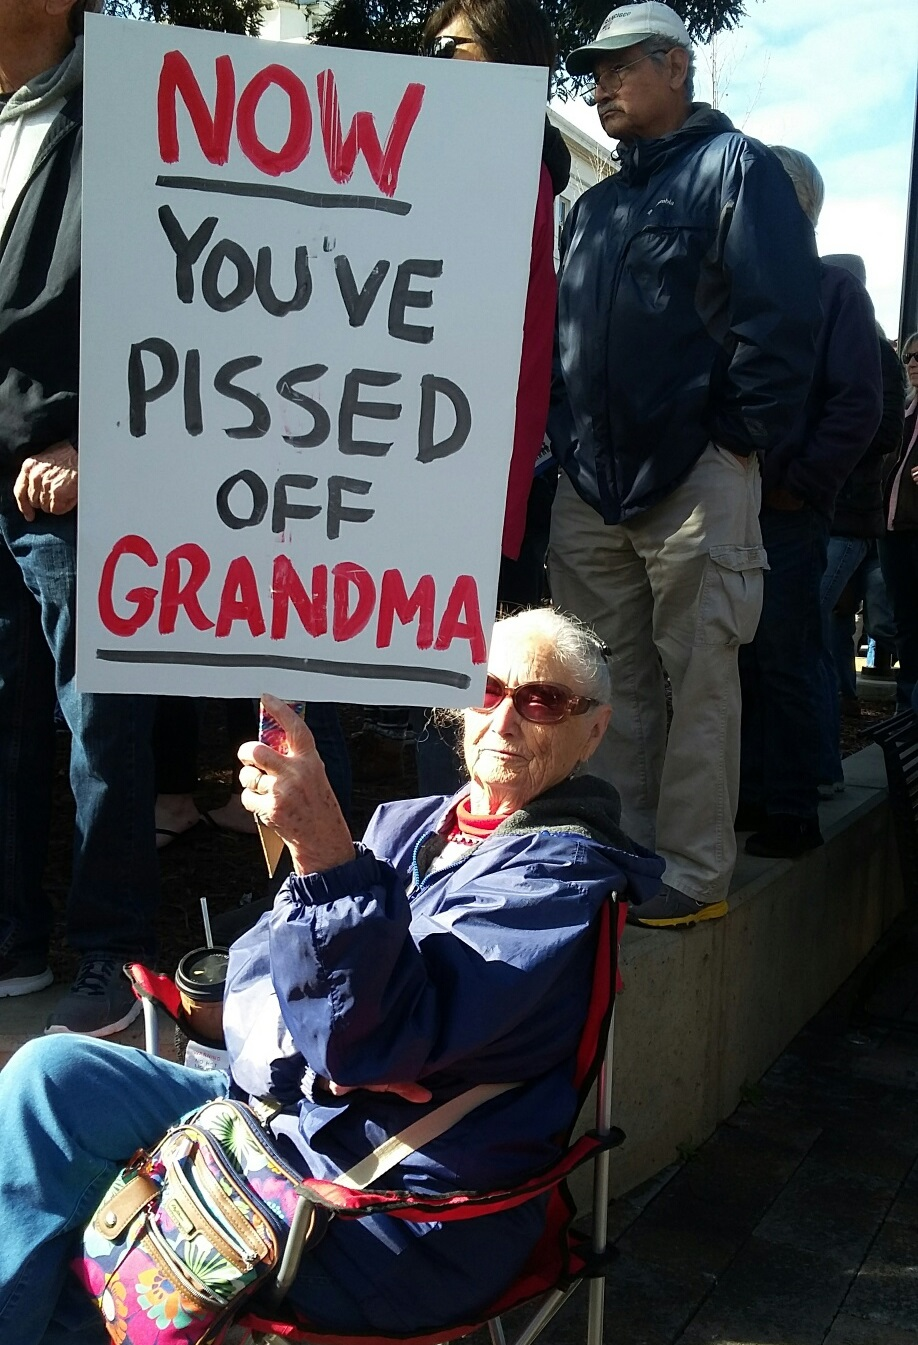 Now You've Pissed Off Grandma